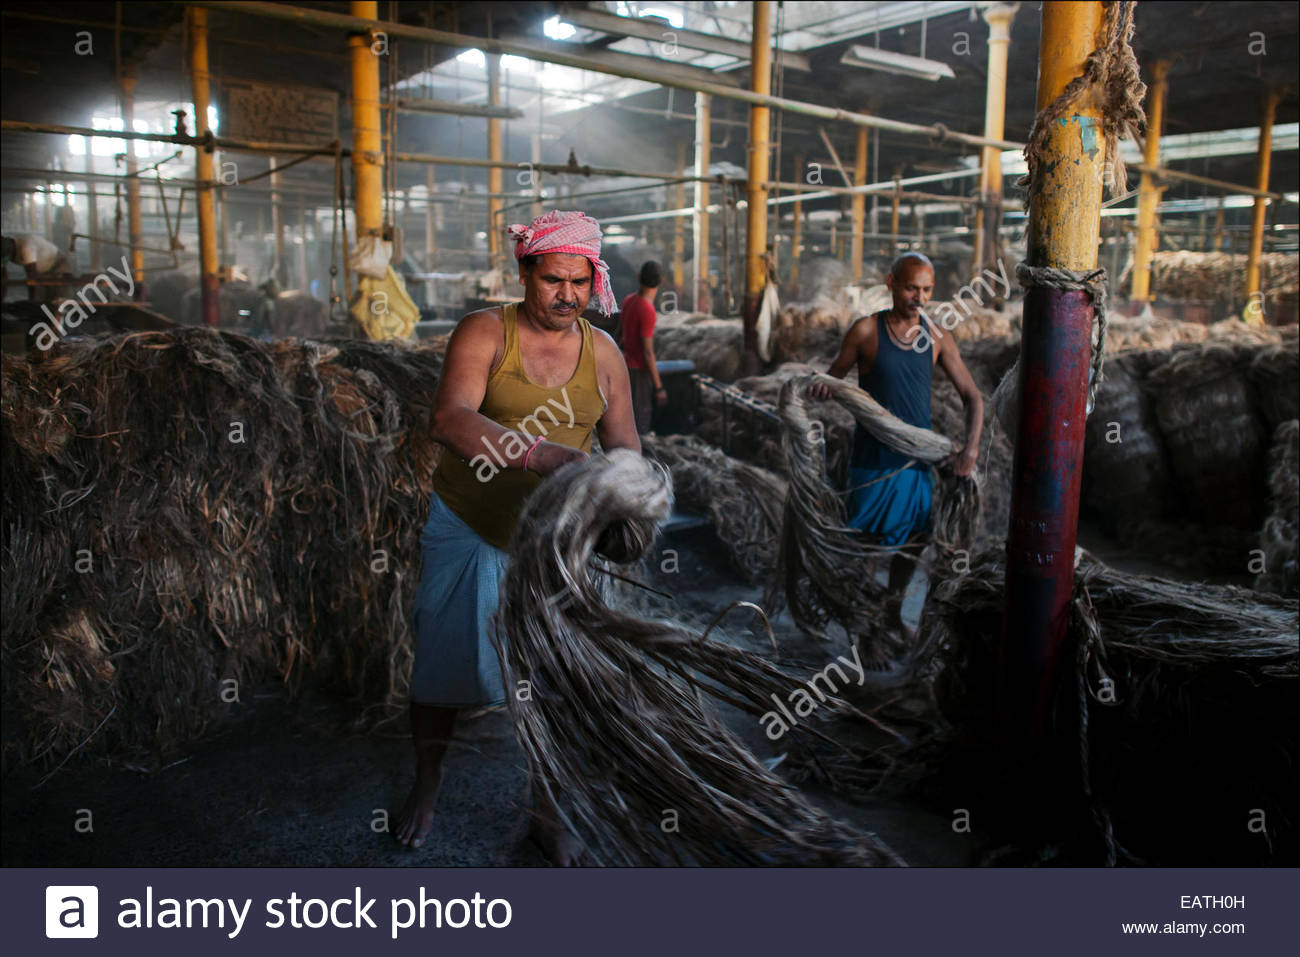 Migrant workers from Bihar turn raw jute into bolts of golden fiber at the 1858 built Hastings Jute Mill. Stock Photo